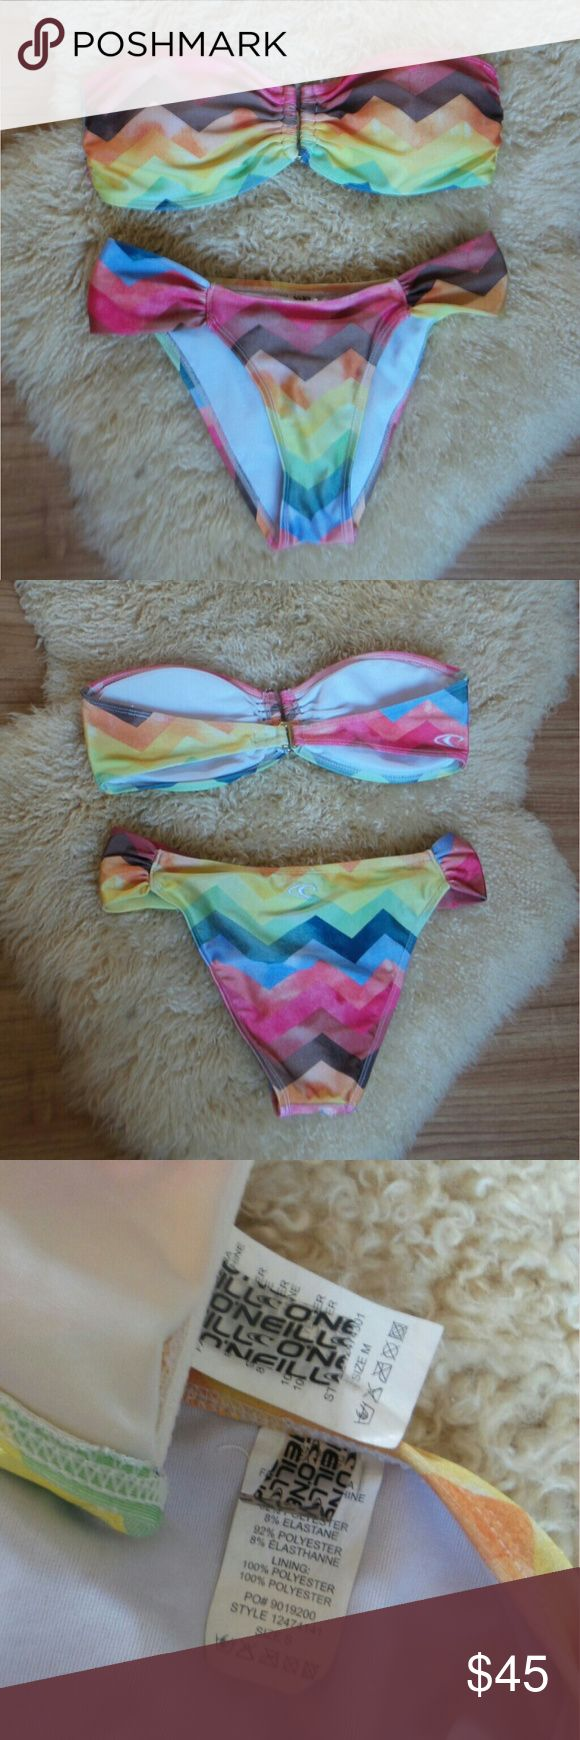 O'Neill Rainbow Chevron Bikini M Top/S Bottom Cute and quality bikini in great condition, no flaws! Bottoms would fit sizes 2-4, bandaeu top would fit c/d cups. O'Neill is similar to surf brands like Volcom, Billabong, Rip Curl, Roxy, RVCA, Reef, ect. O'Neill Swim Bikinis